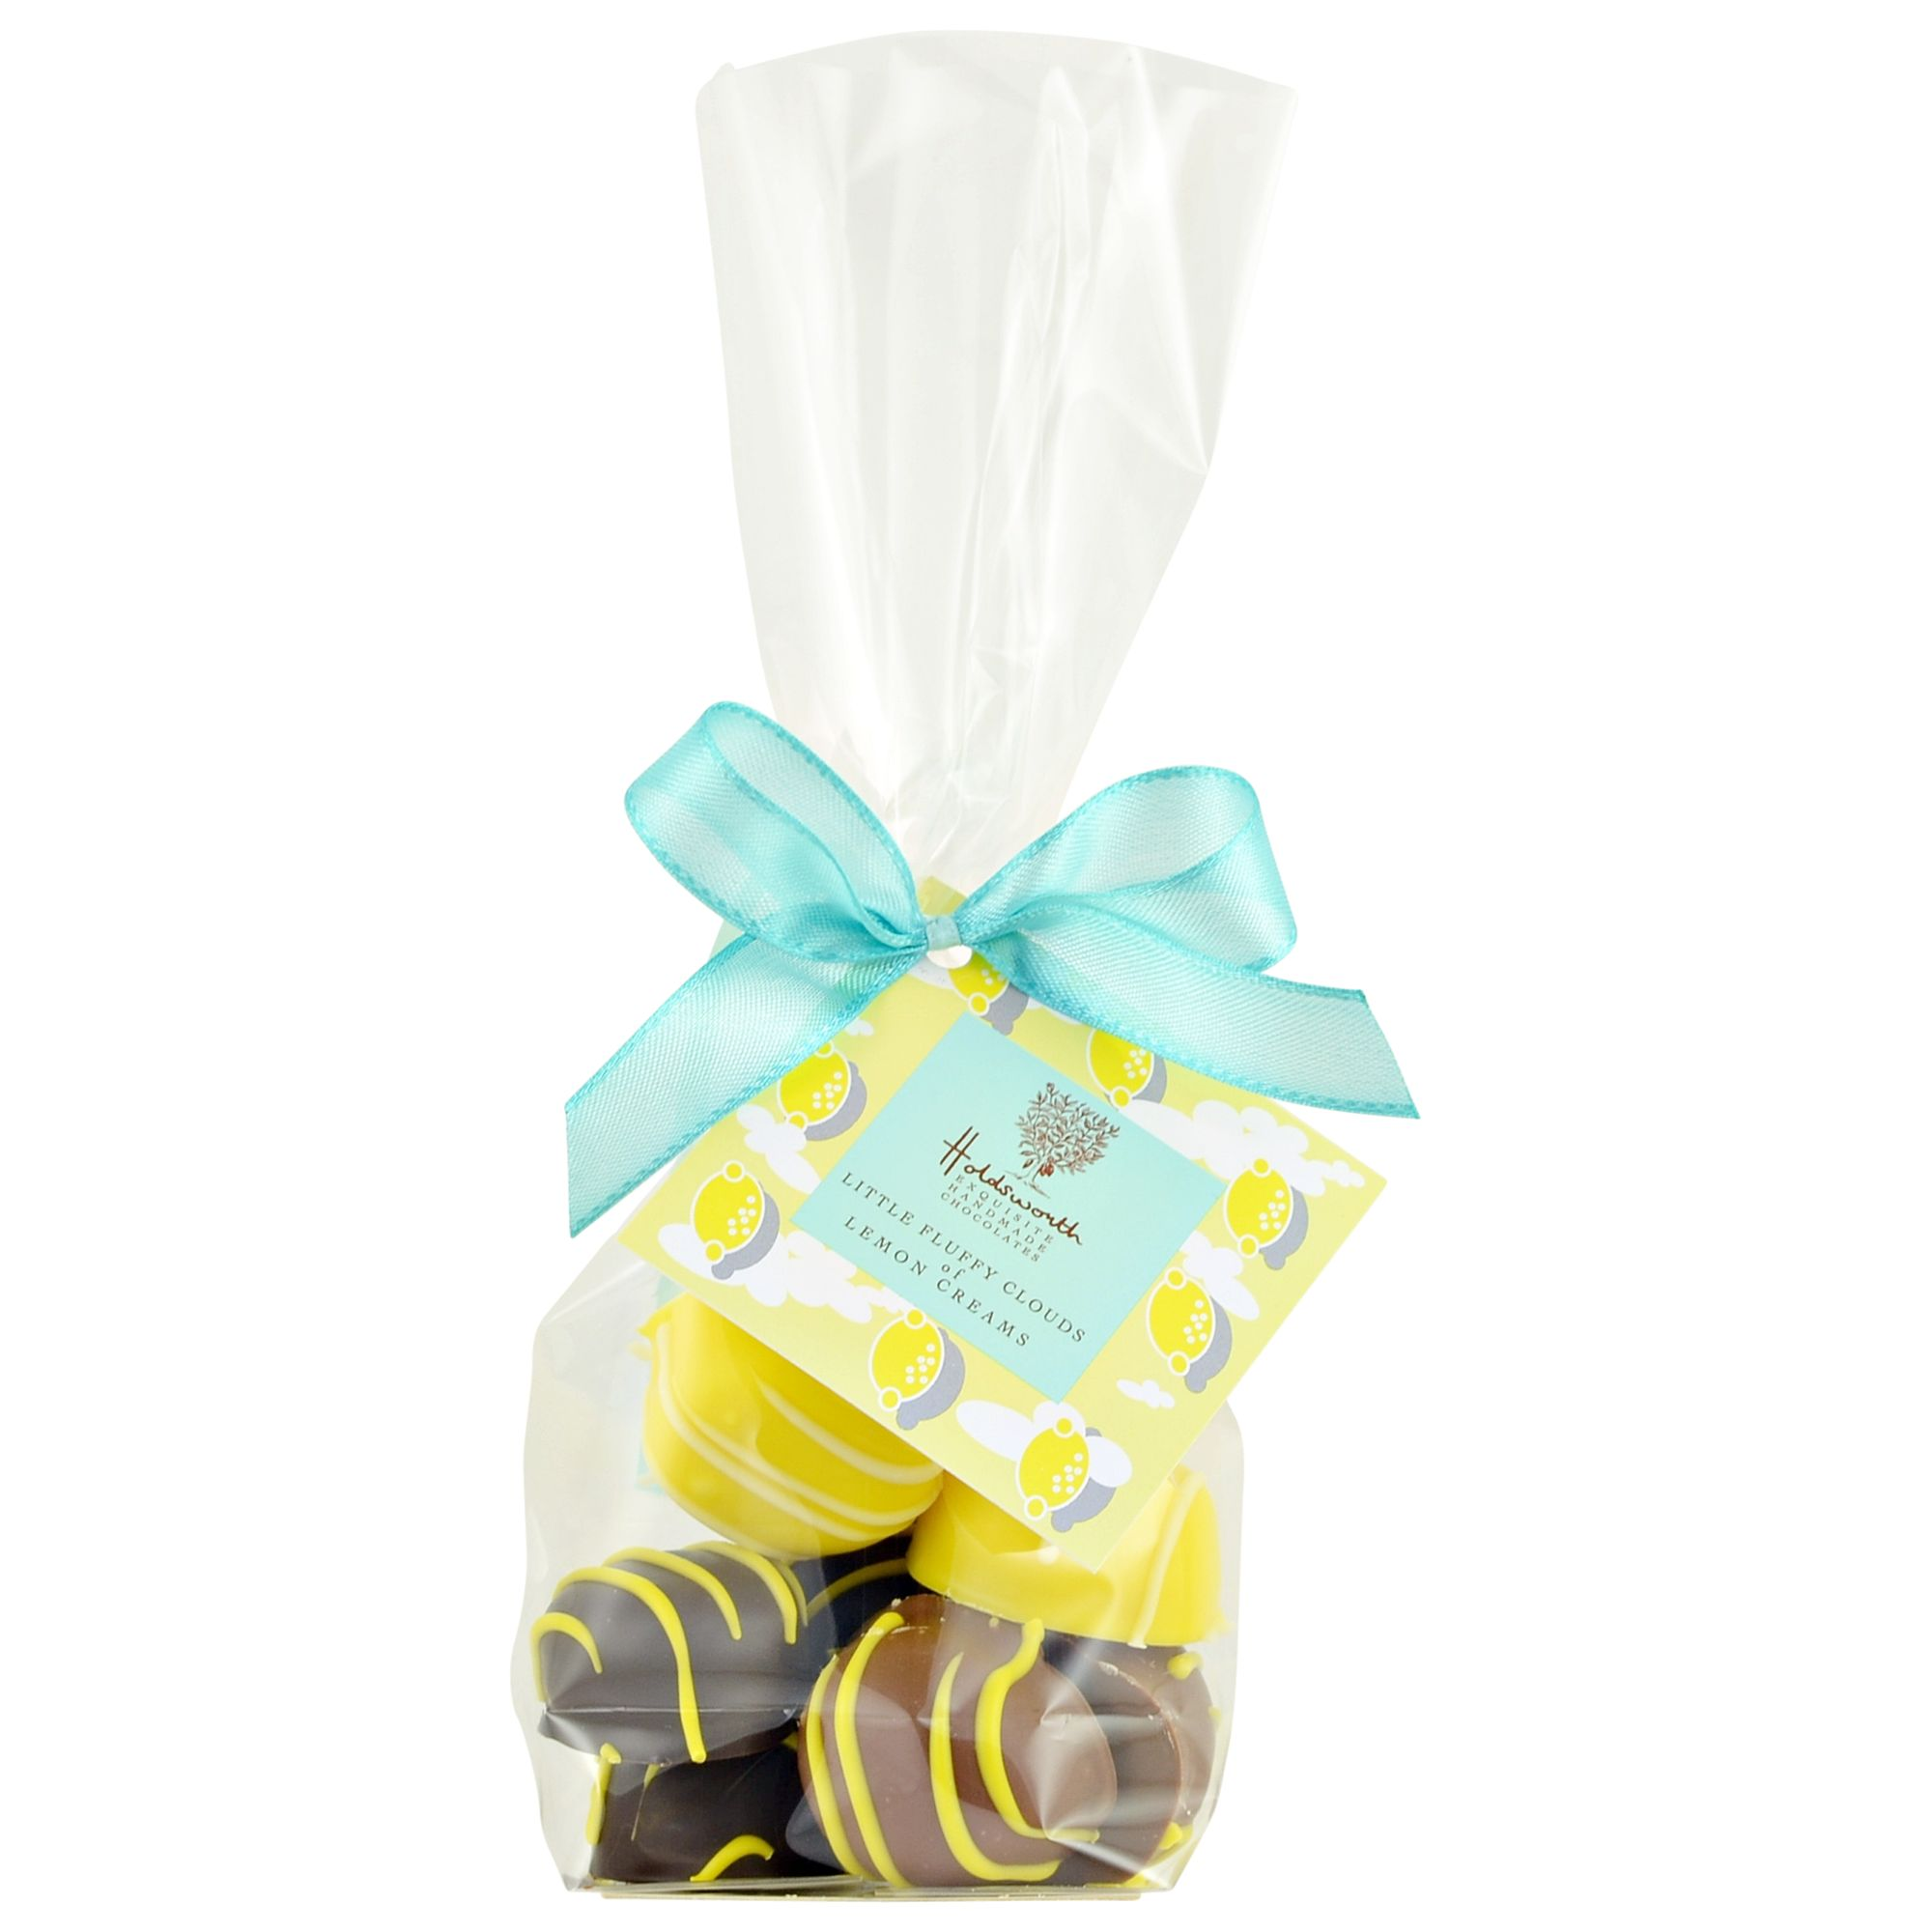 Holdsworth Lemon Truffles Gift Bag, 100g